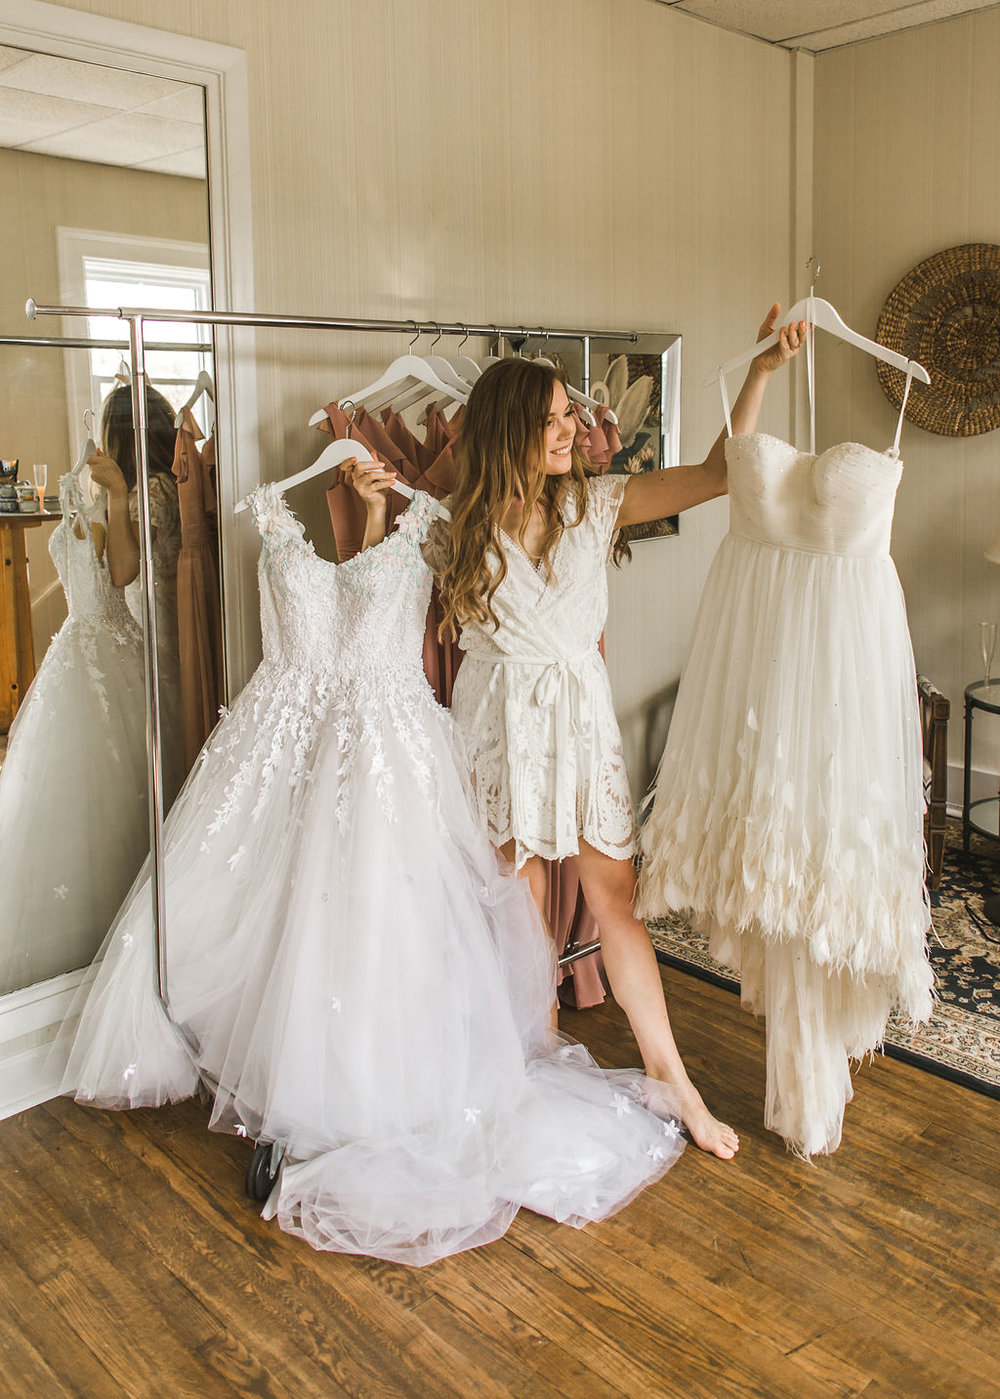 Bridget is a dress designer in Detroit and she made BOTH of her dresses. Go look at her stuff! It is magical. To say that I was excited to see them in person was an understatement. This morning was all about Bridget and her dresses and I couldn't have been happier.